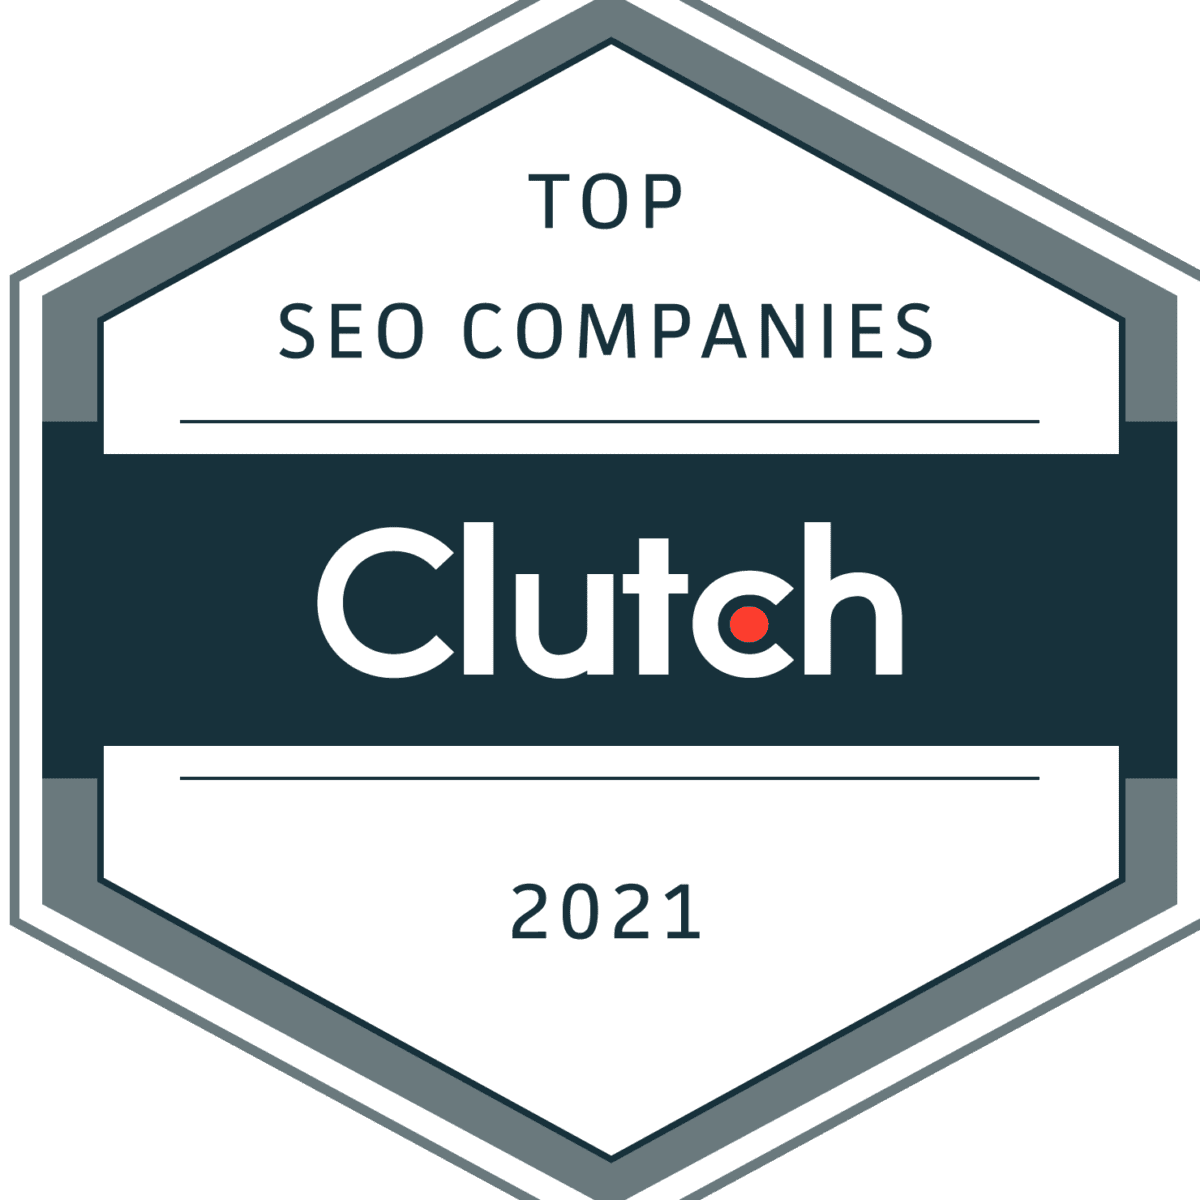 top seo company by clutch 2021 blink click media